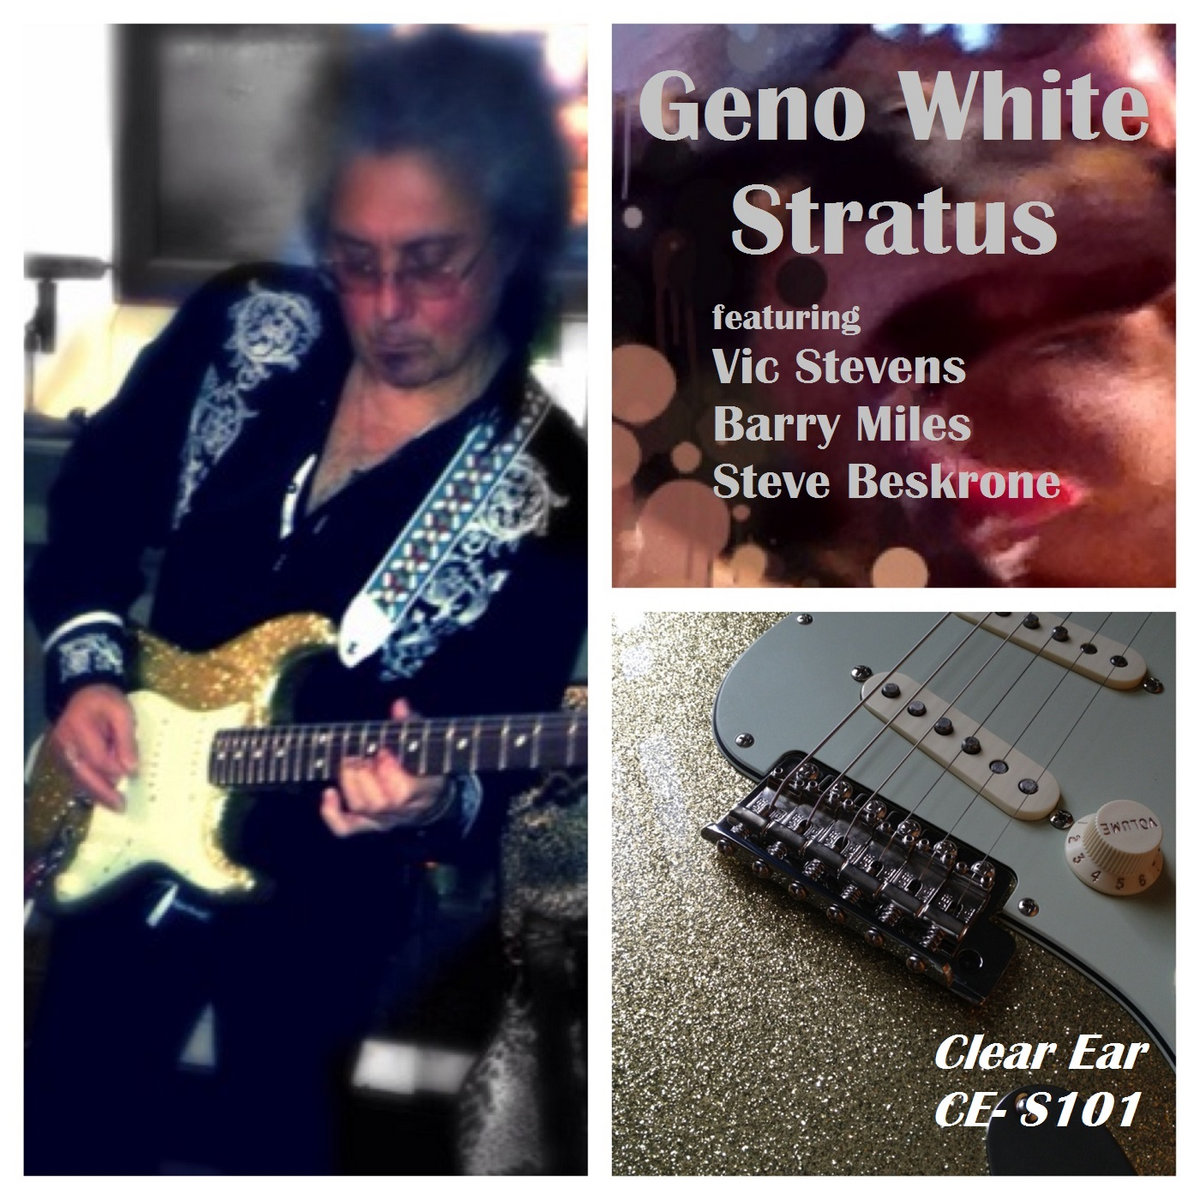 Stratus by Geno White